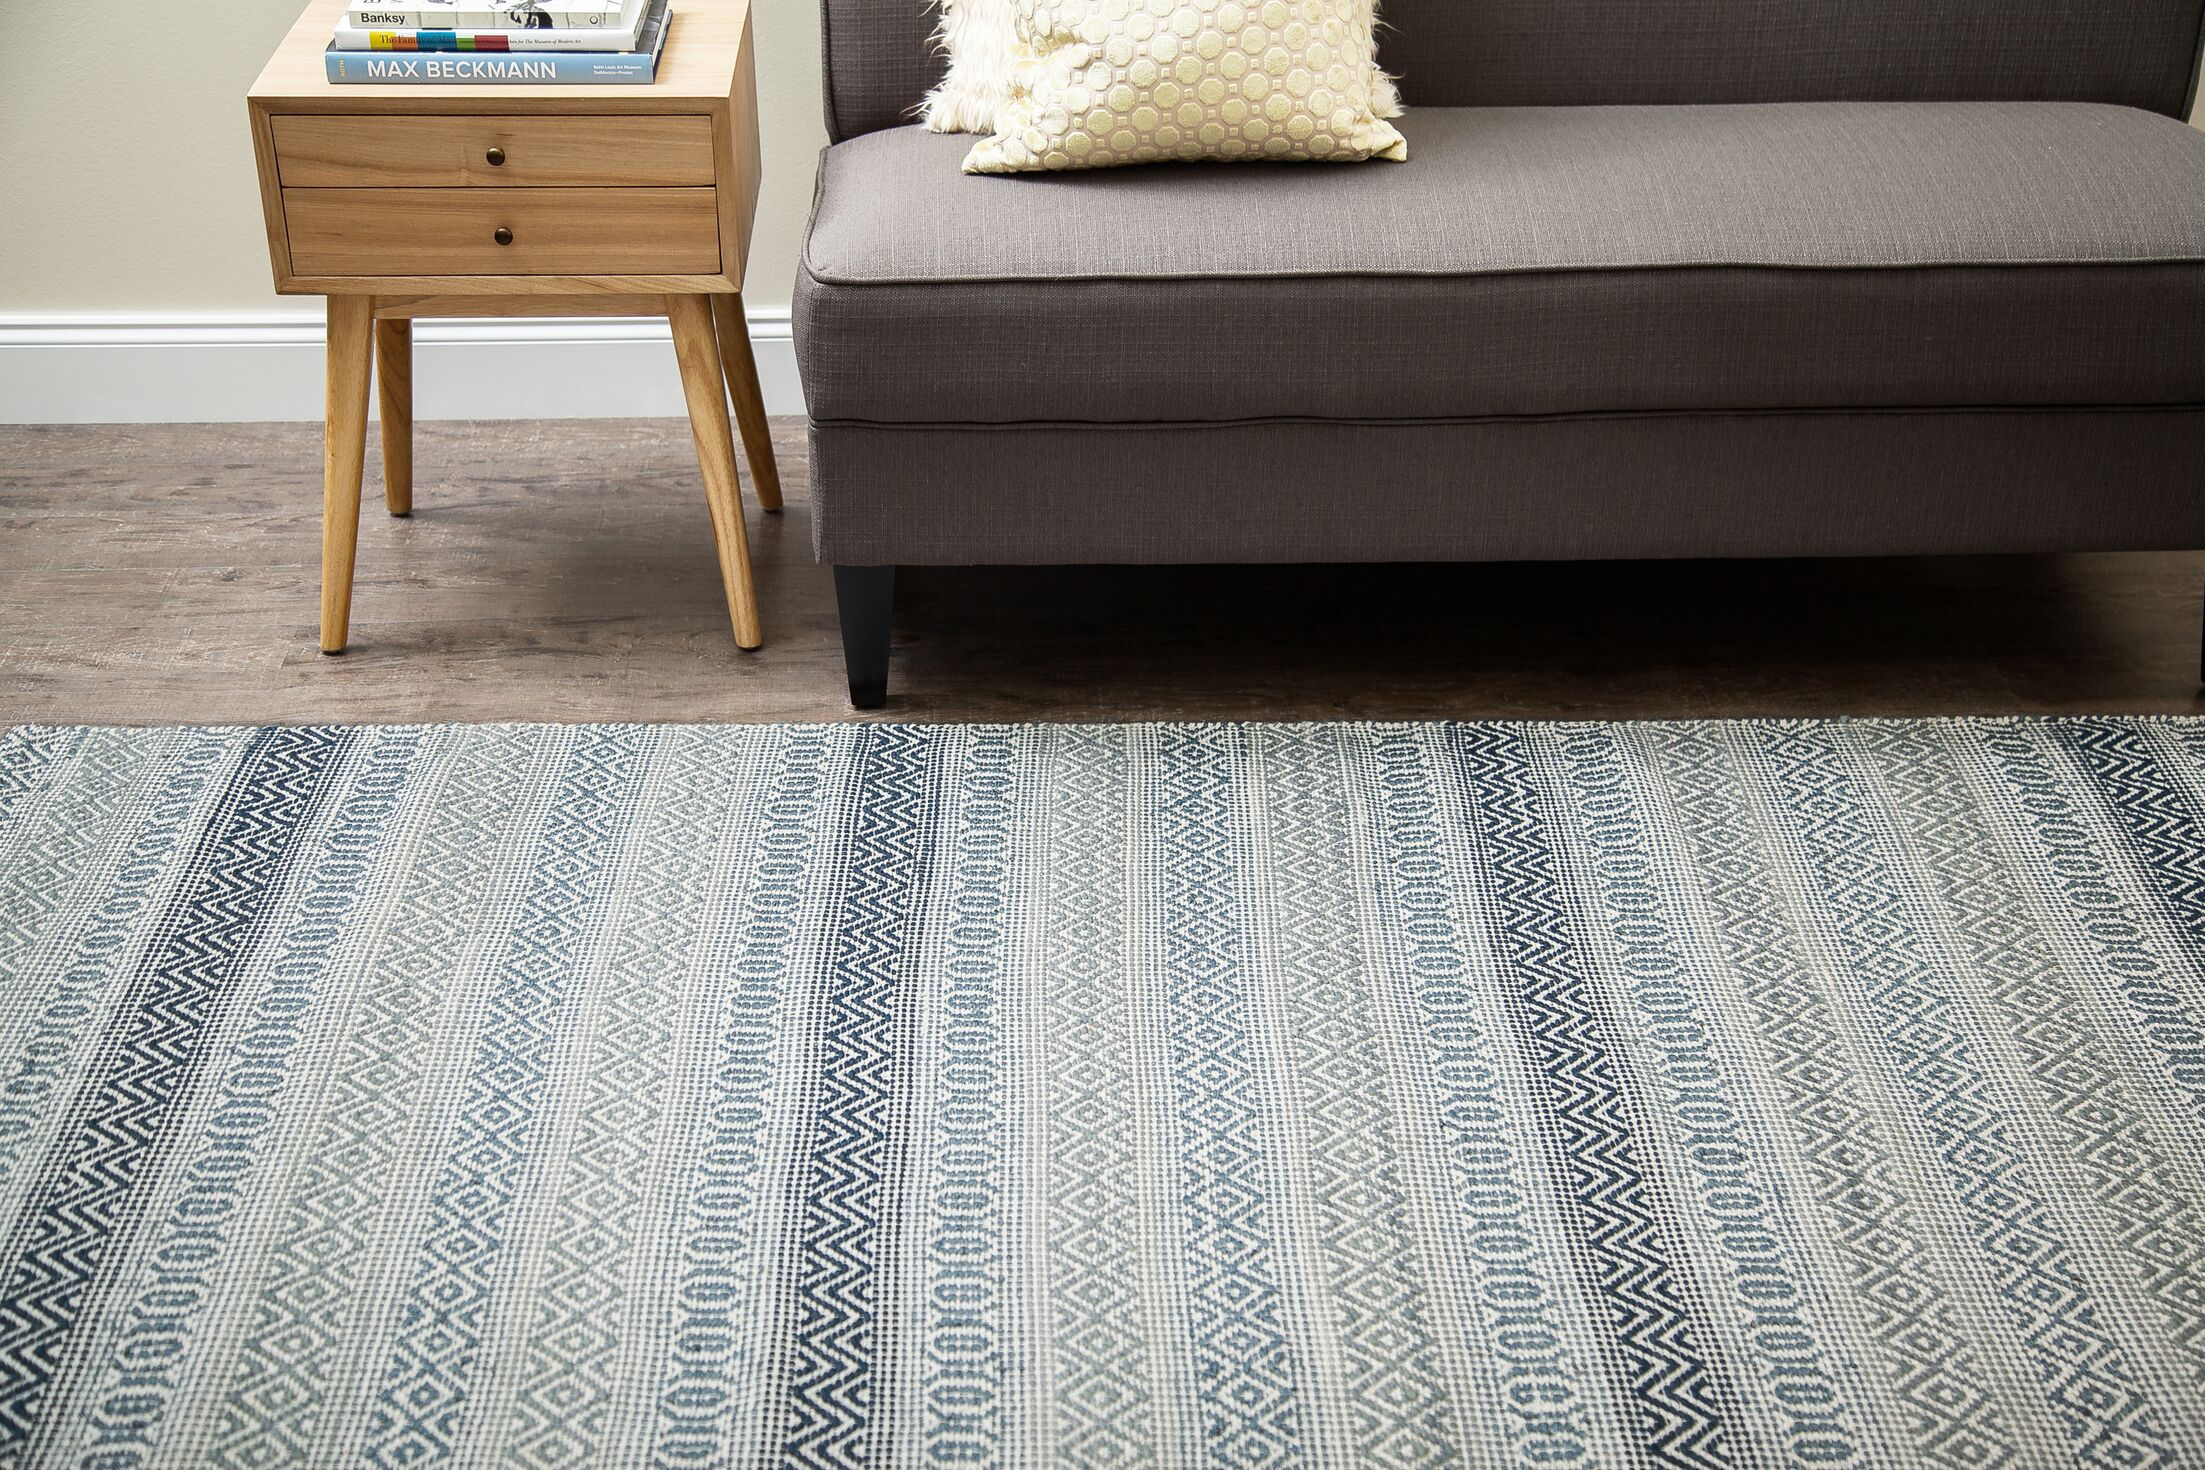 Pickering Hand-Woven Blue/Ivory Area Rug Rug Size: Runner 2'6